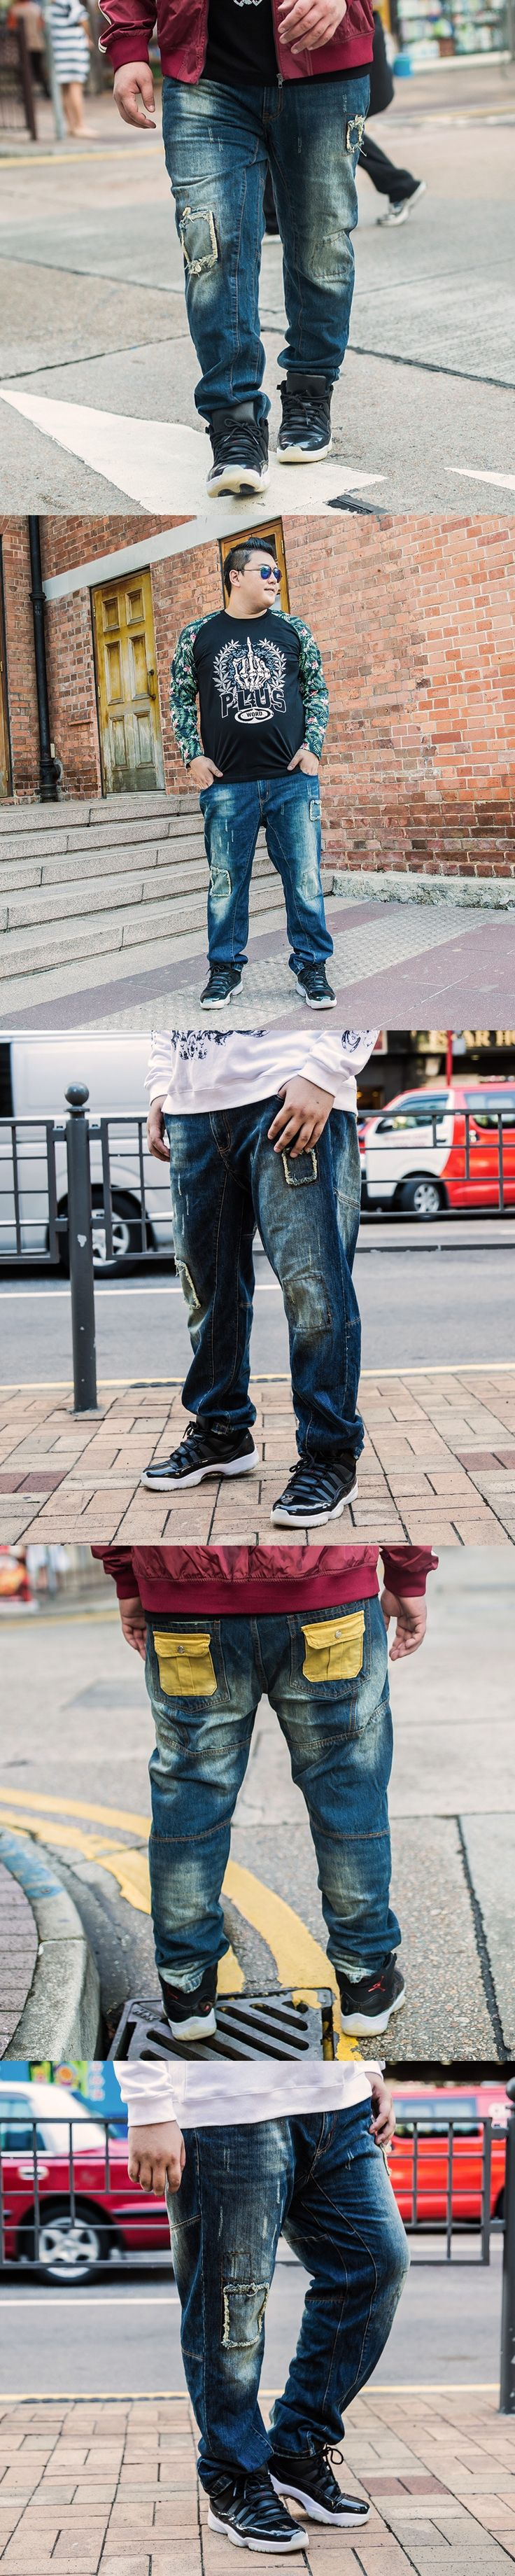 Large Size 48 Mens Straight Distressed Jeans Hip Hop Cargo Jeans Pants Men Baggy Ripped Jeans Homme Big and Tall Brand Clothing